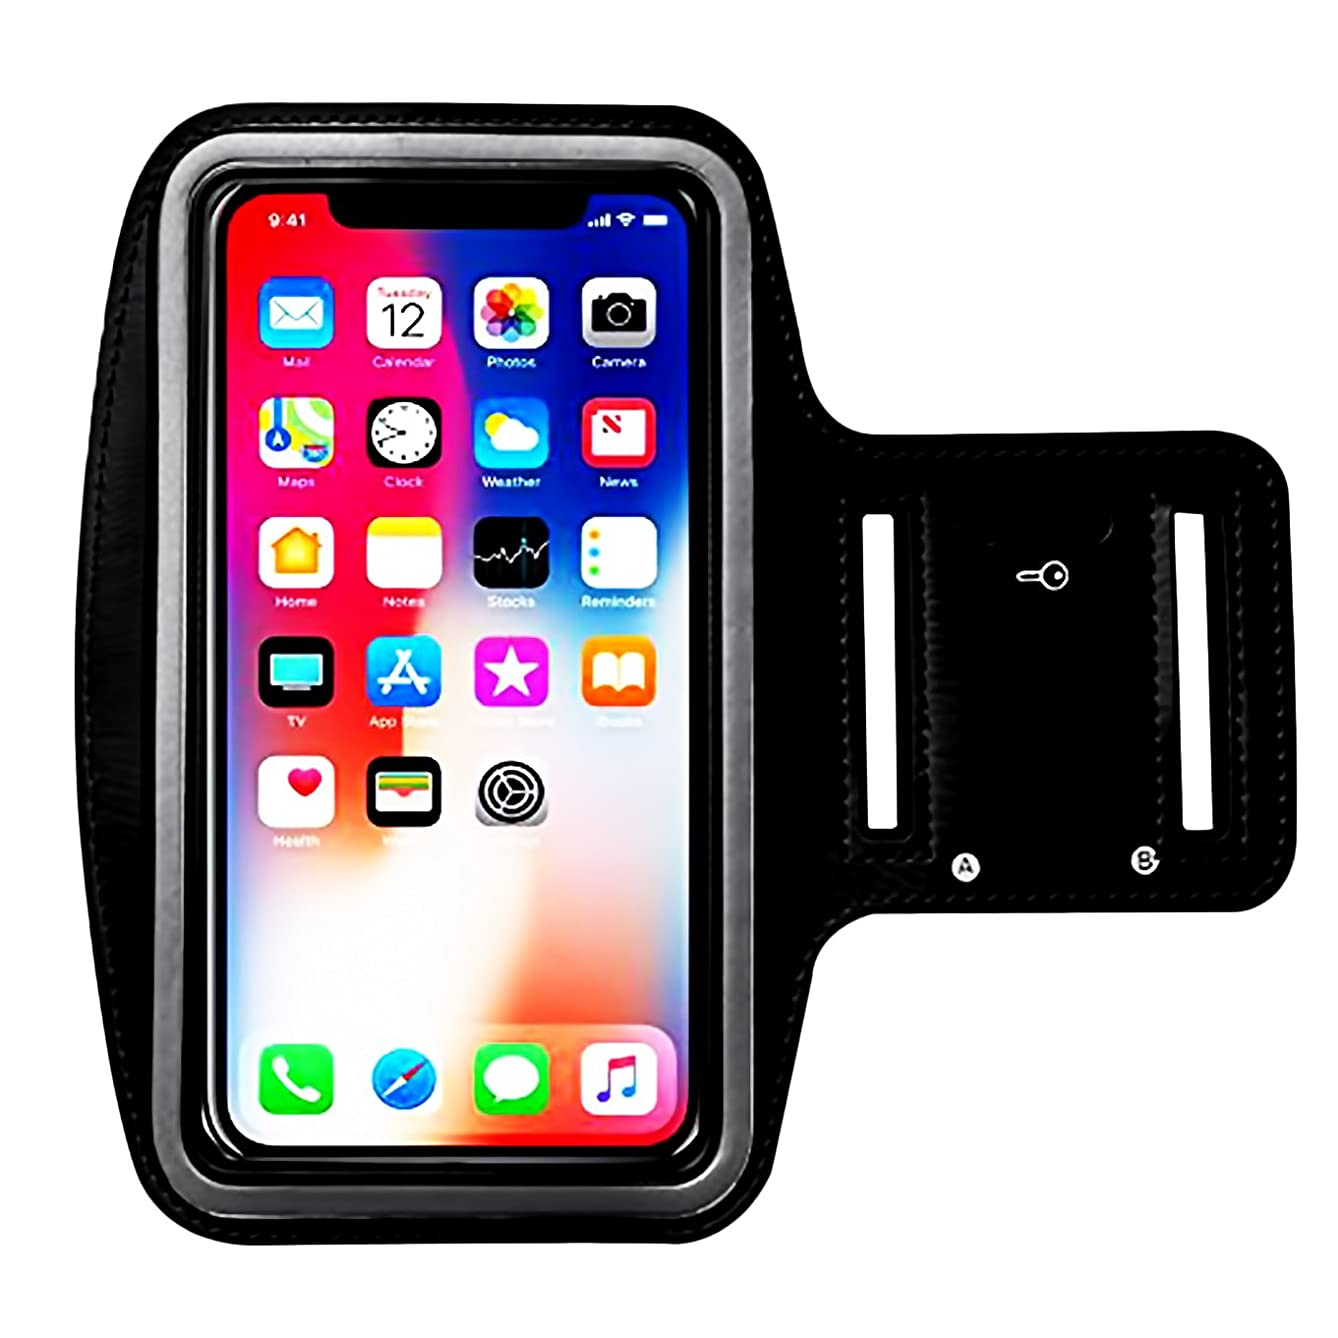 Water Resistant Sports Armband,iEugen Universal up to 5.5 Inch with Key Holder for iPhone X,8 Plus, 7 Plus, 6 Plus, 6S Plus (5.5-Inch), Galaxy S9/S8/S6/S5, S9 Plus, S8 Plus, Note 4 -black